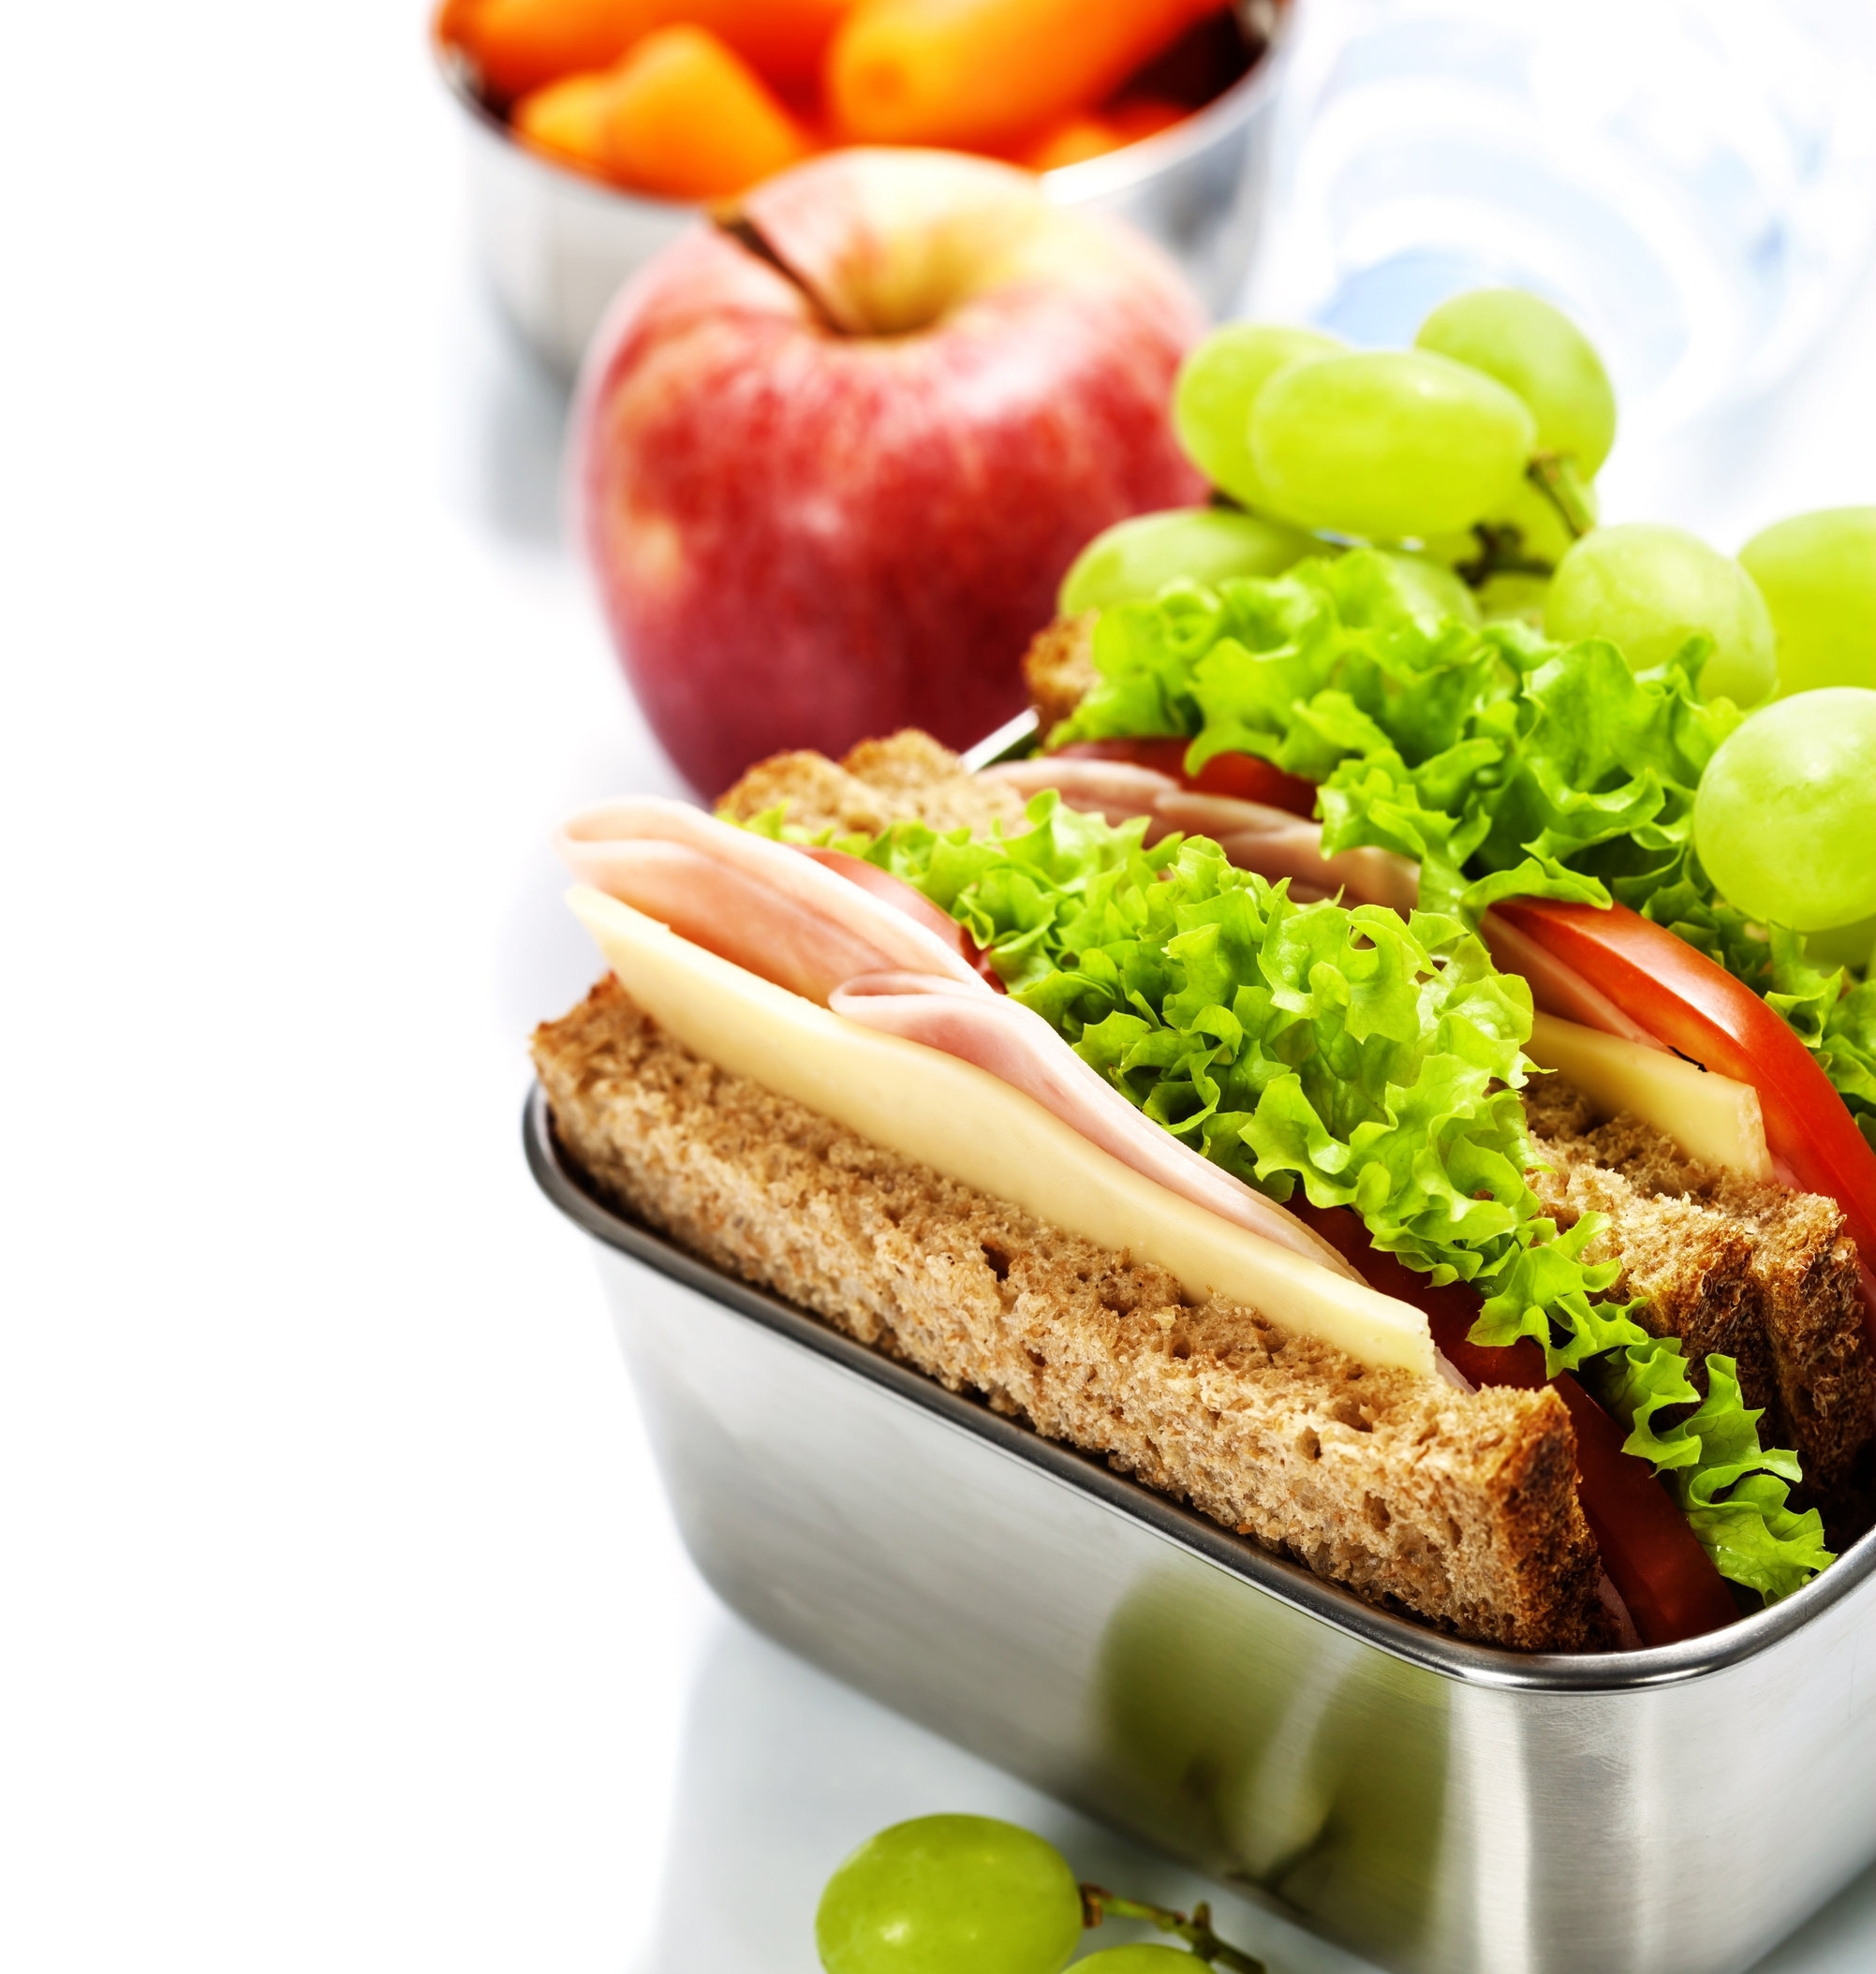 Fresh food made daily from local kitchens in your area - The Lunch Lady has a loyal and dedicated team of Lunch Ladies and Lunch Guys who help deliver healthy and fresh lunches to school children across Canada.